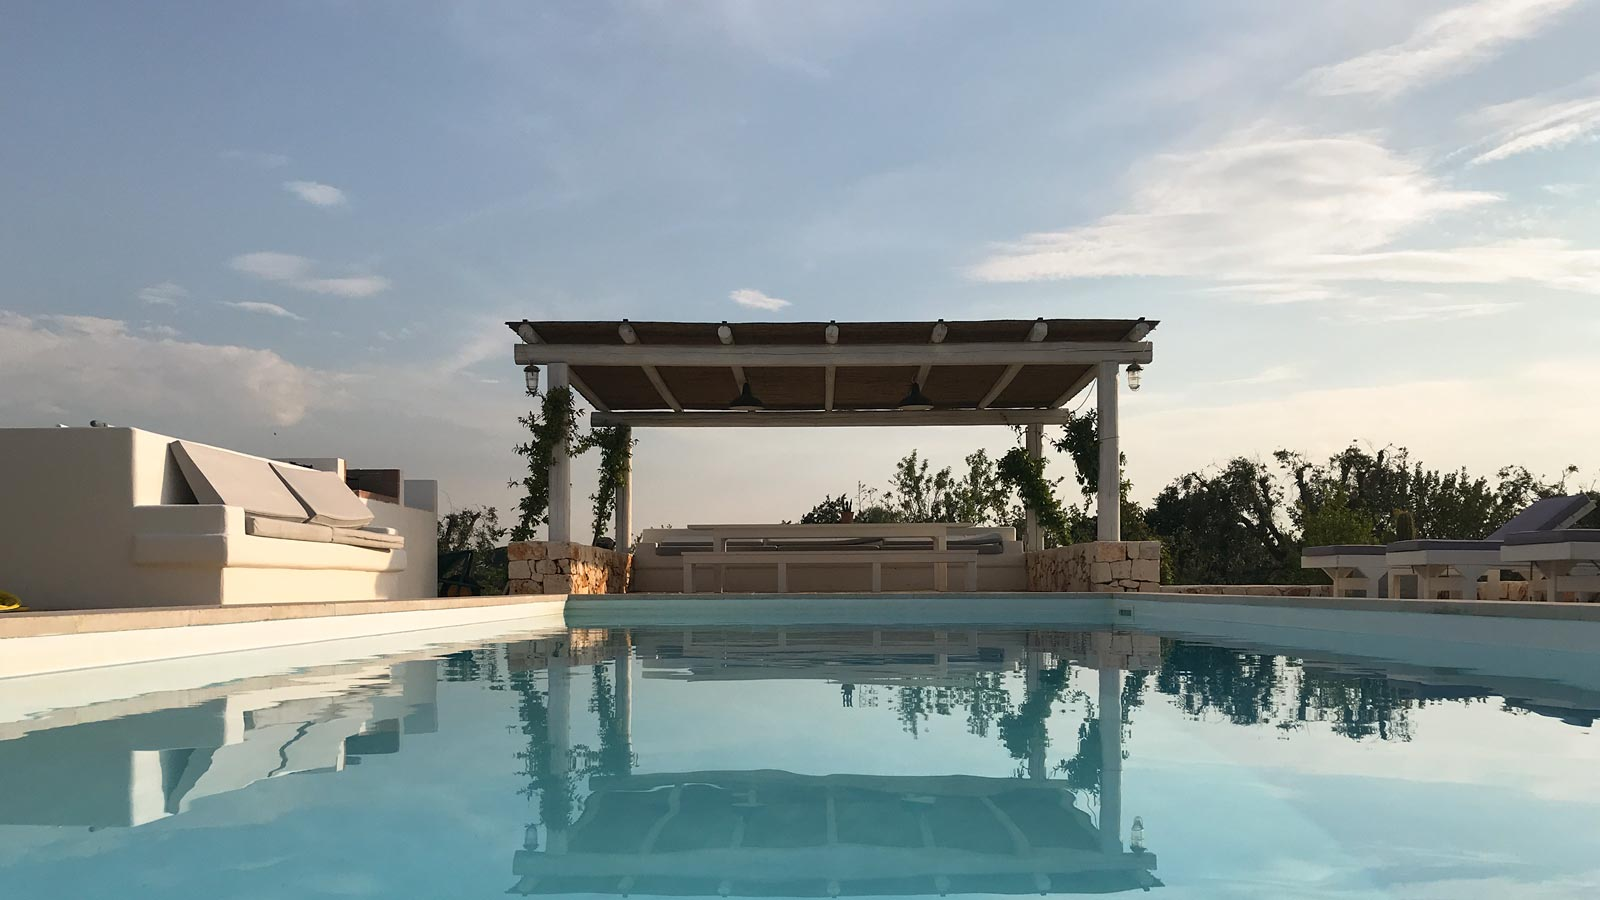 Luxury holiday accommodation with swimming pool in Puglia, Italy